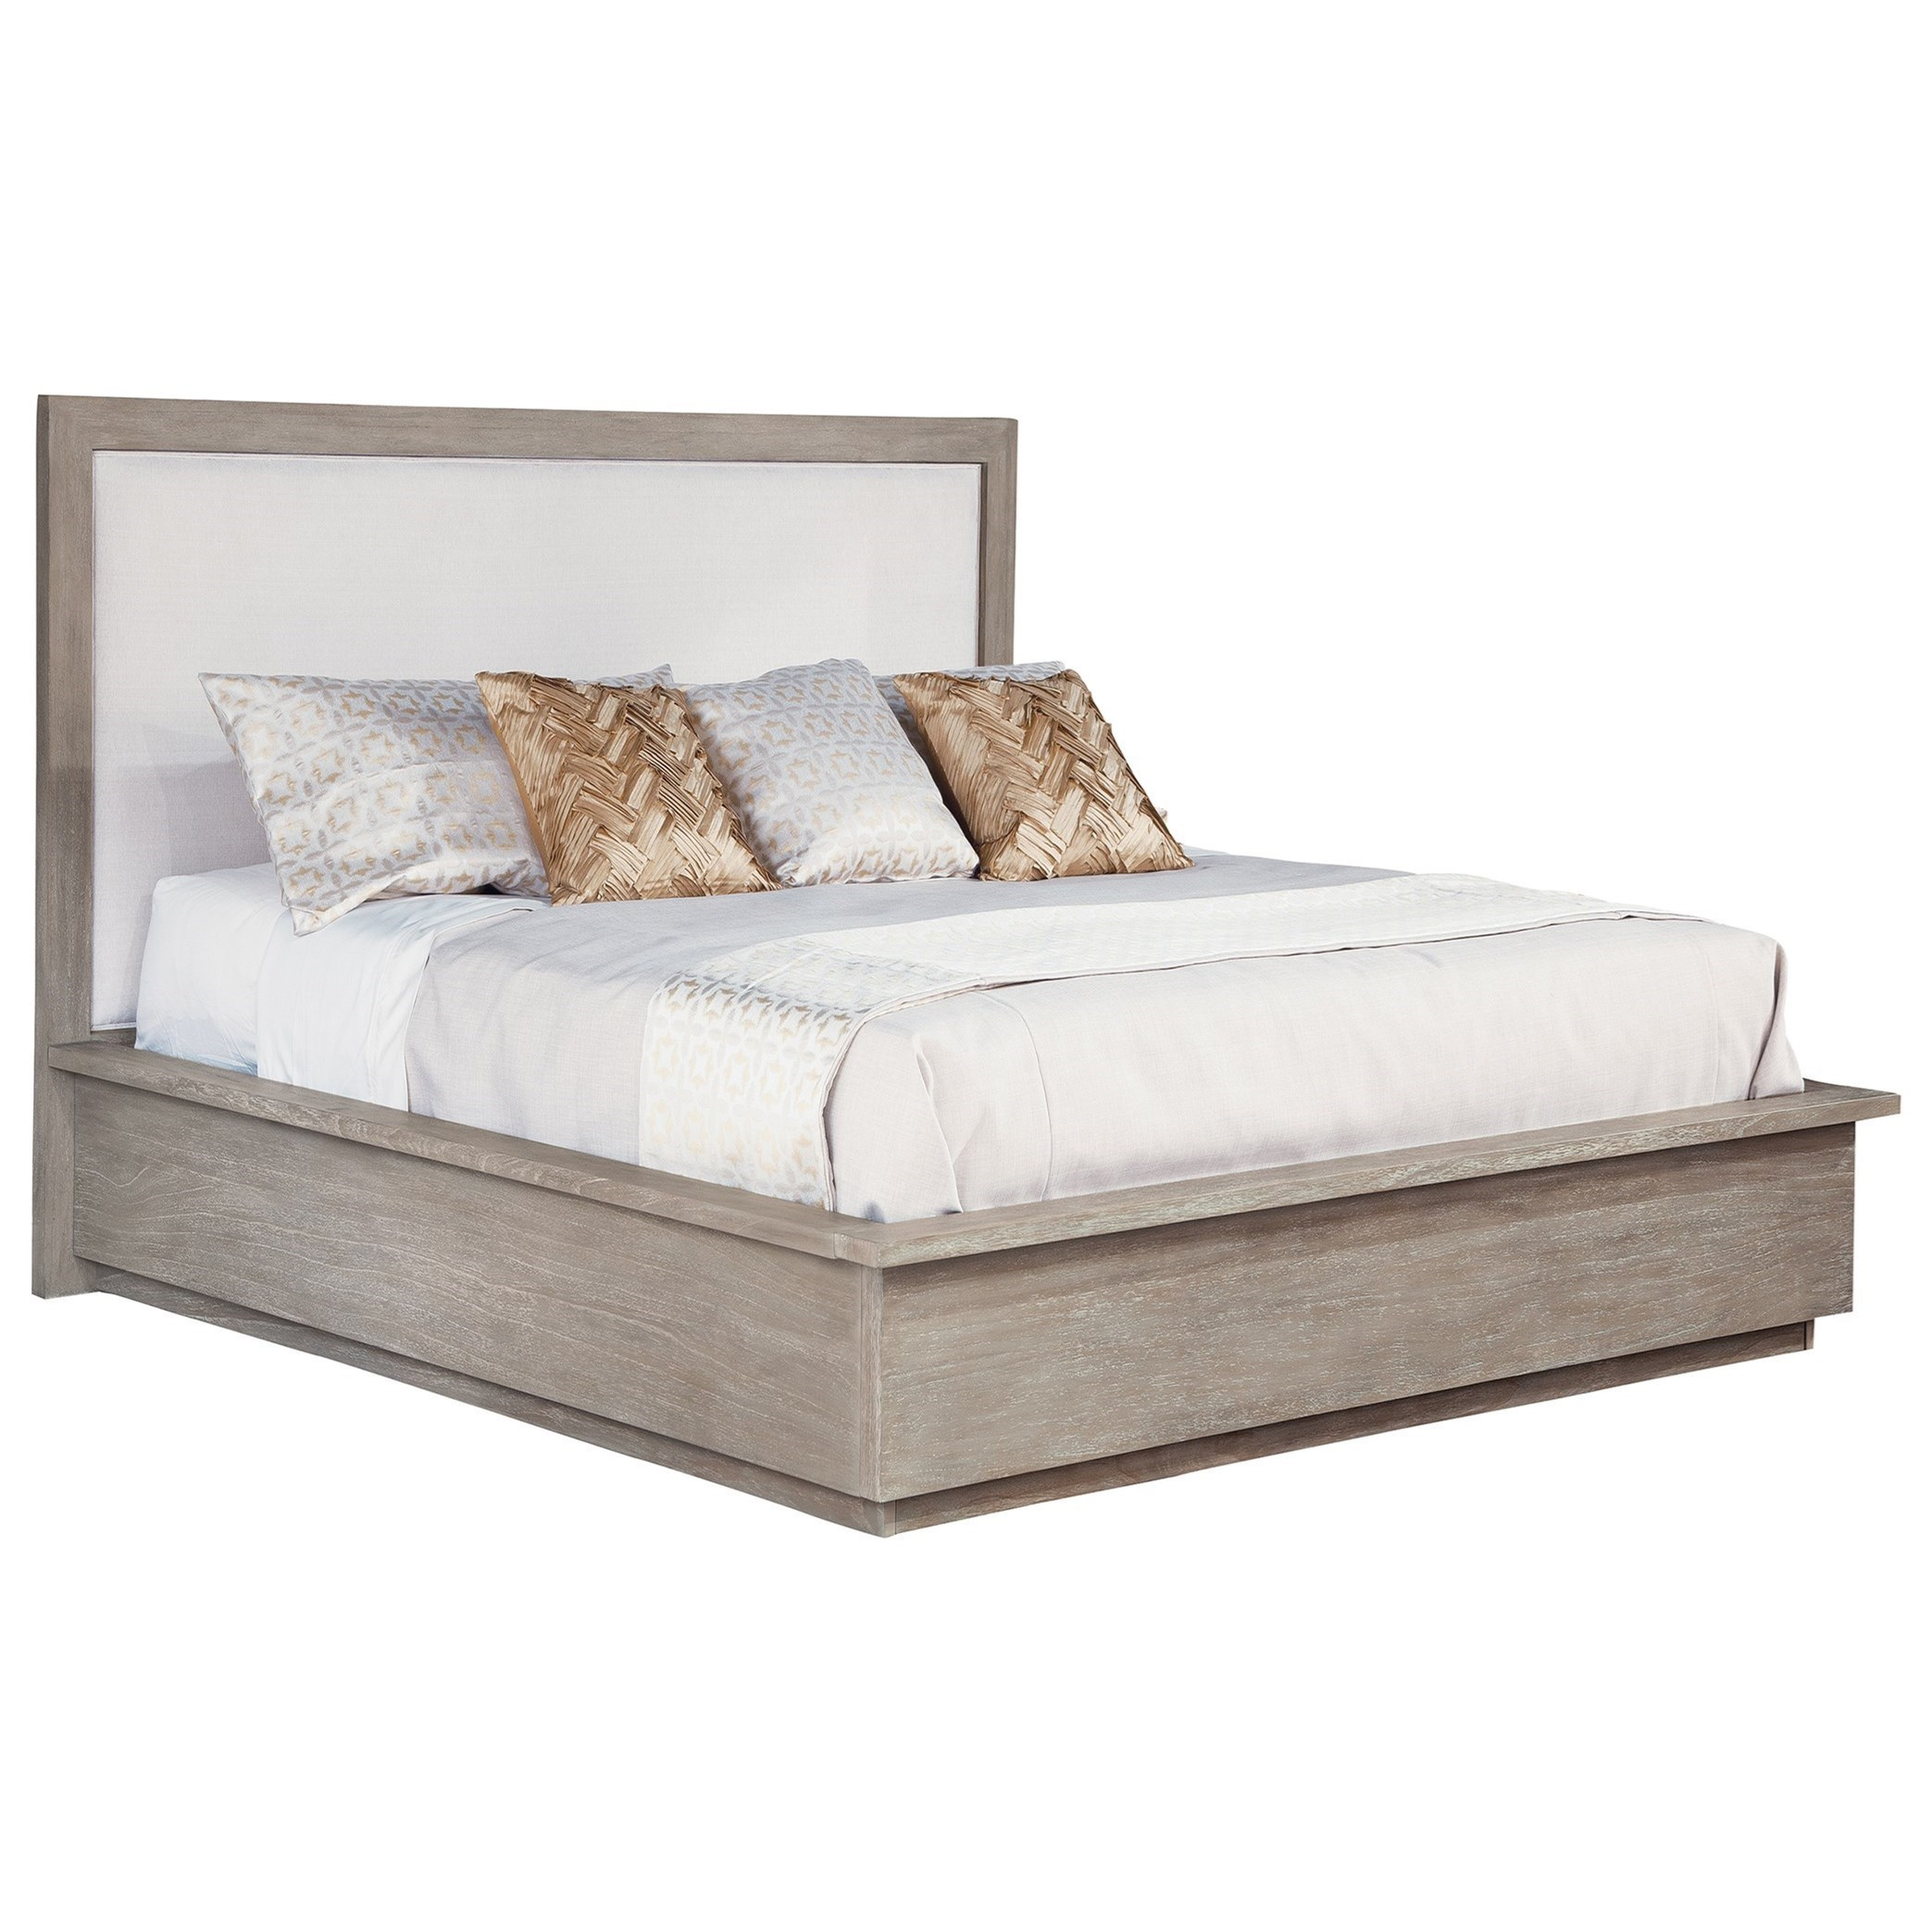 Hekman Berkeley Heights Upholstered Panel Queen Bed